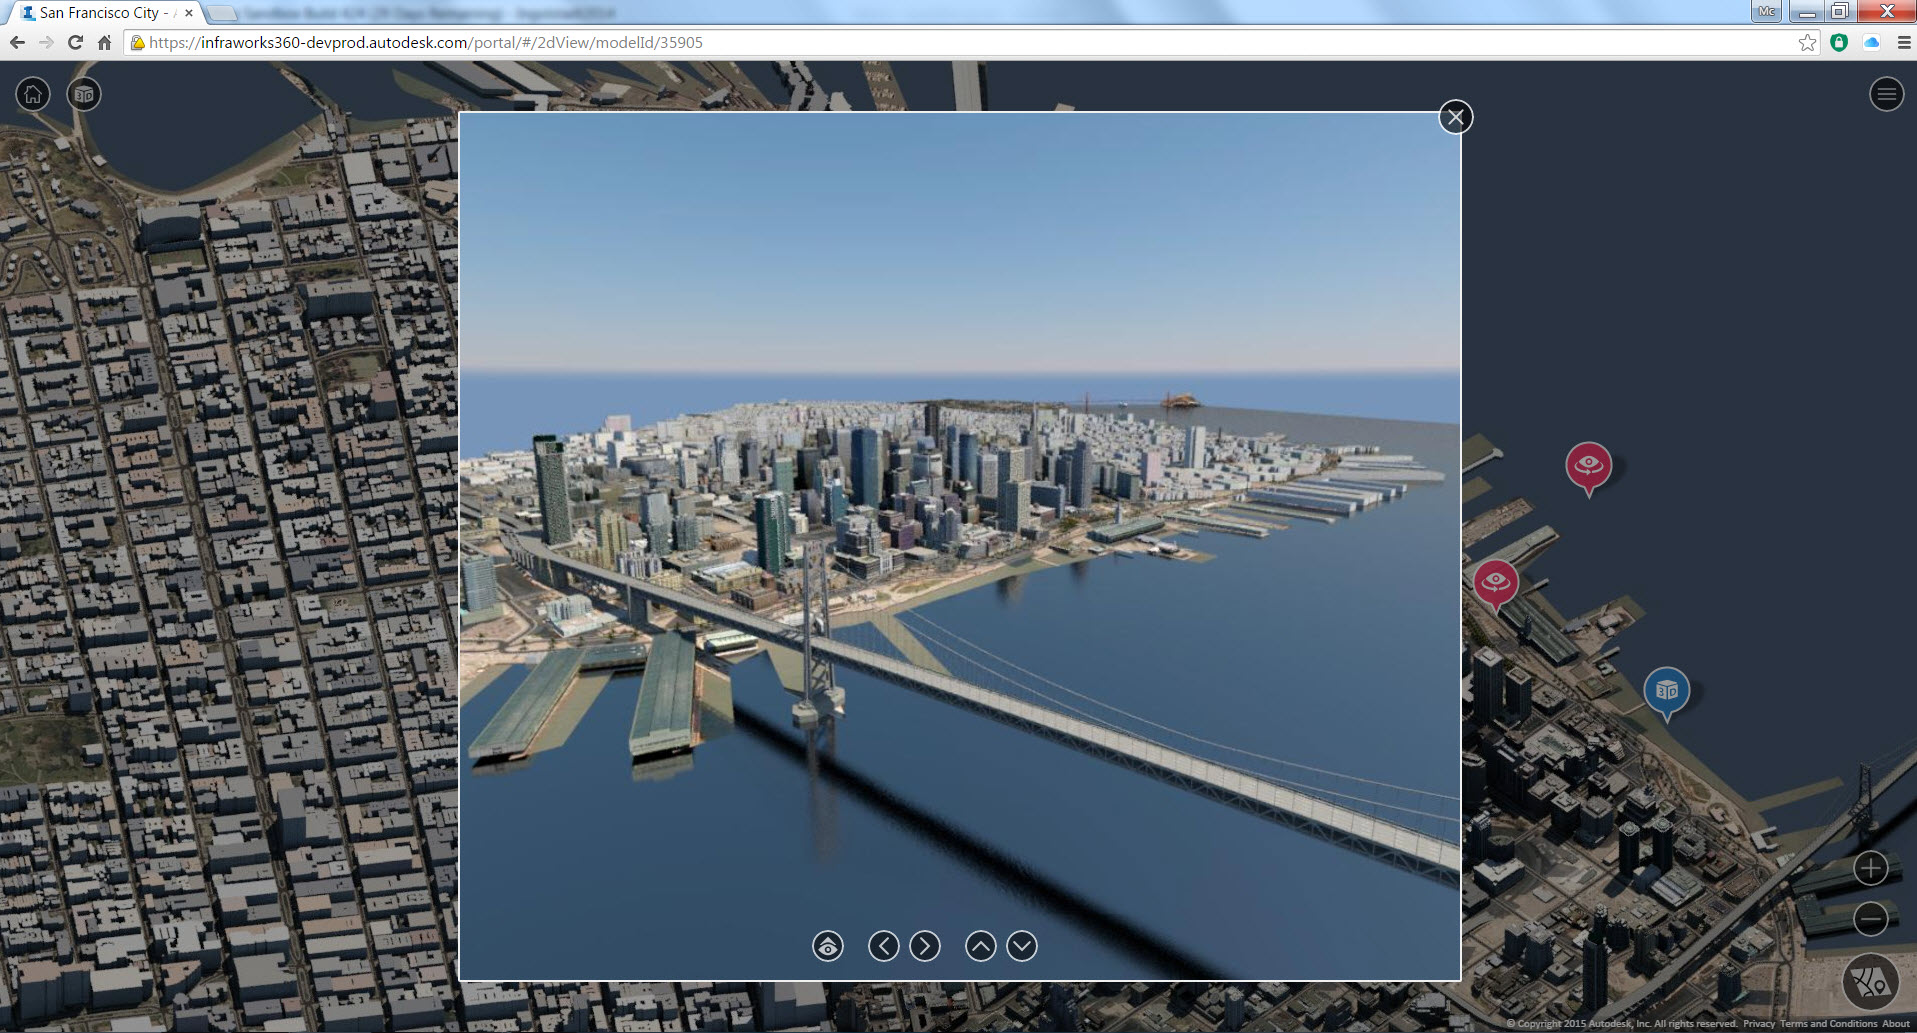 Infraworks-360-sf-1-3500-3500